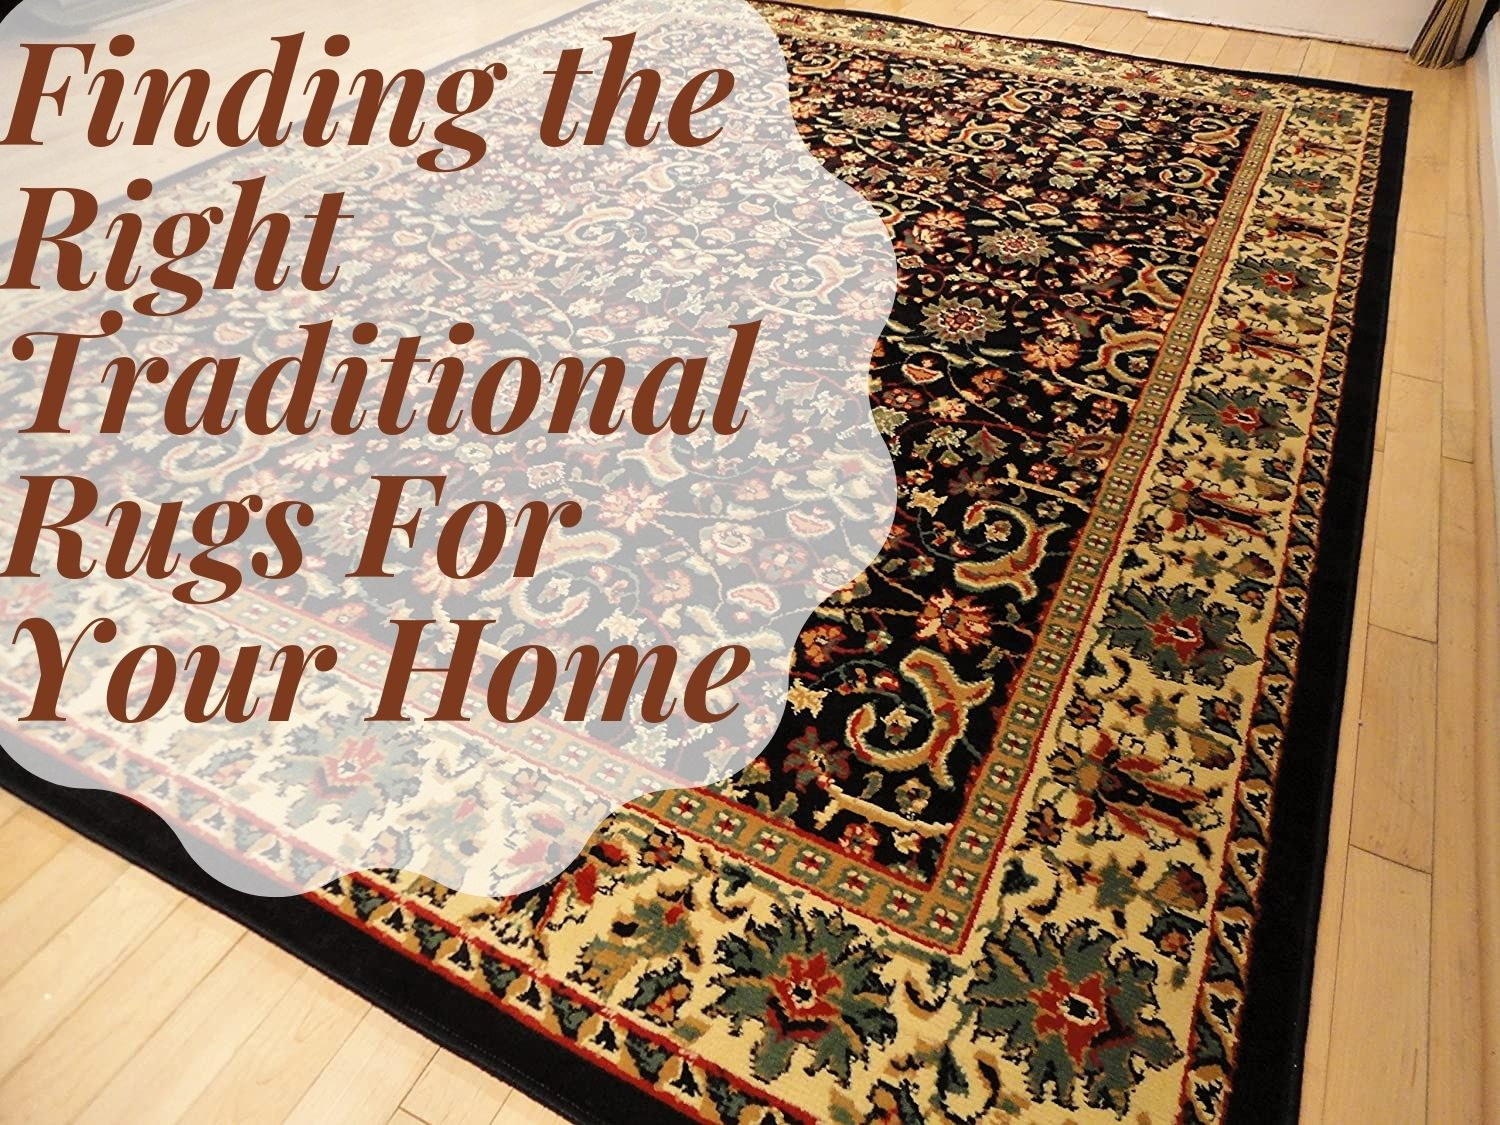 Finding the Right Traditional Rugs For Your Home